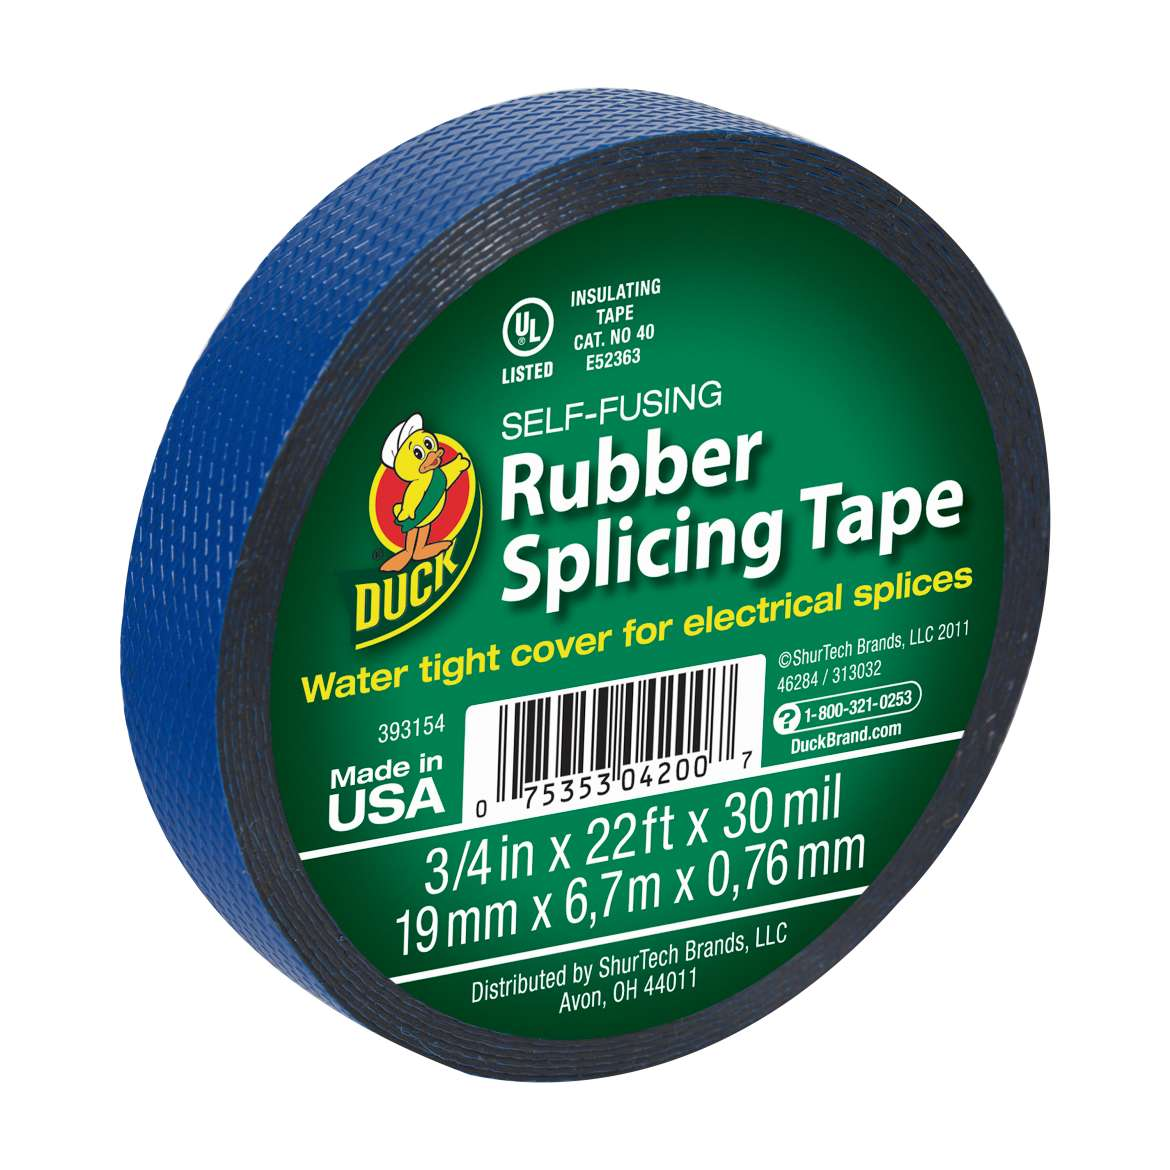 Rubber Splicing Tape Image